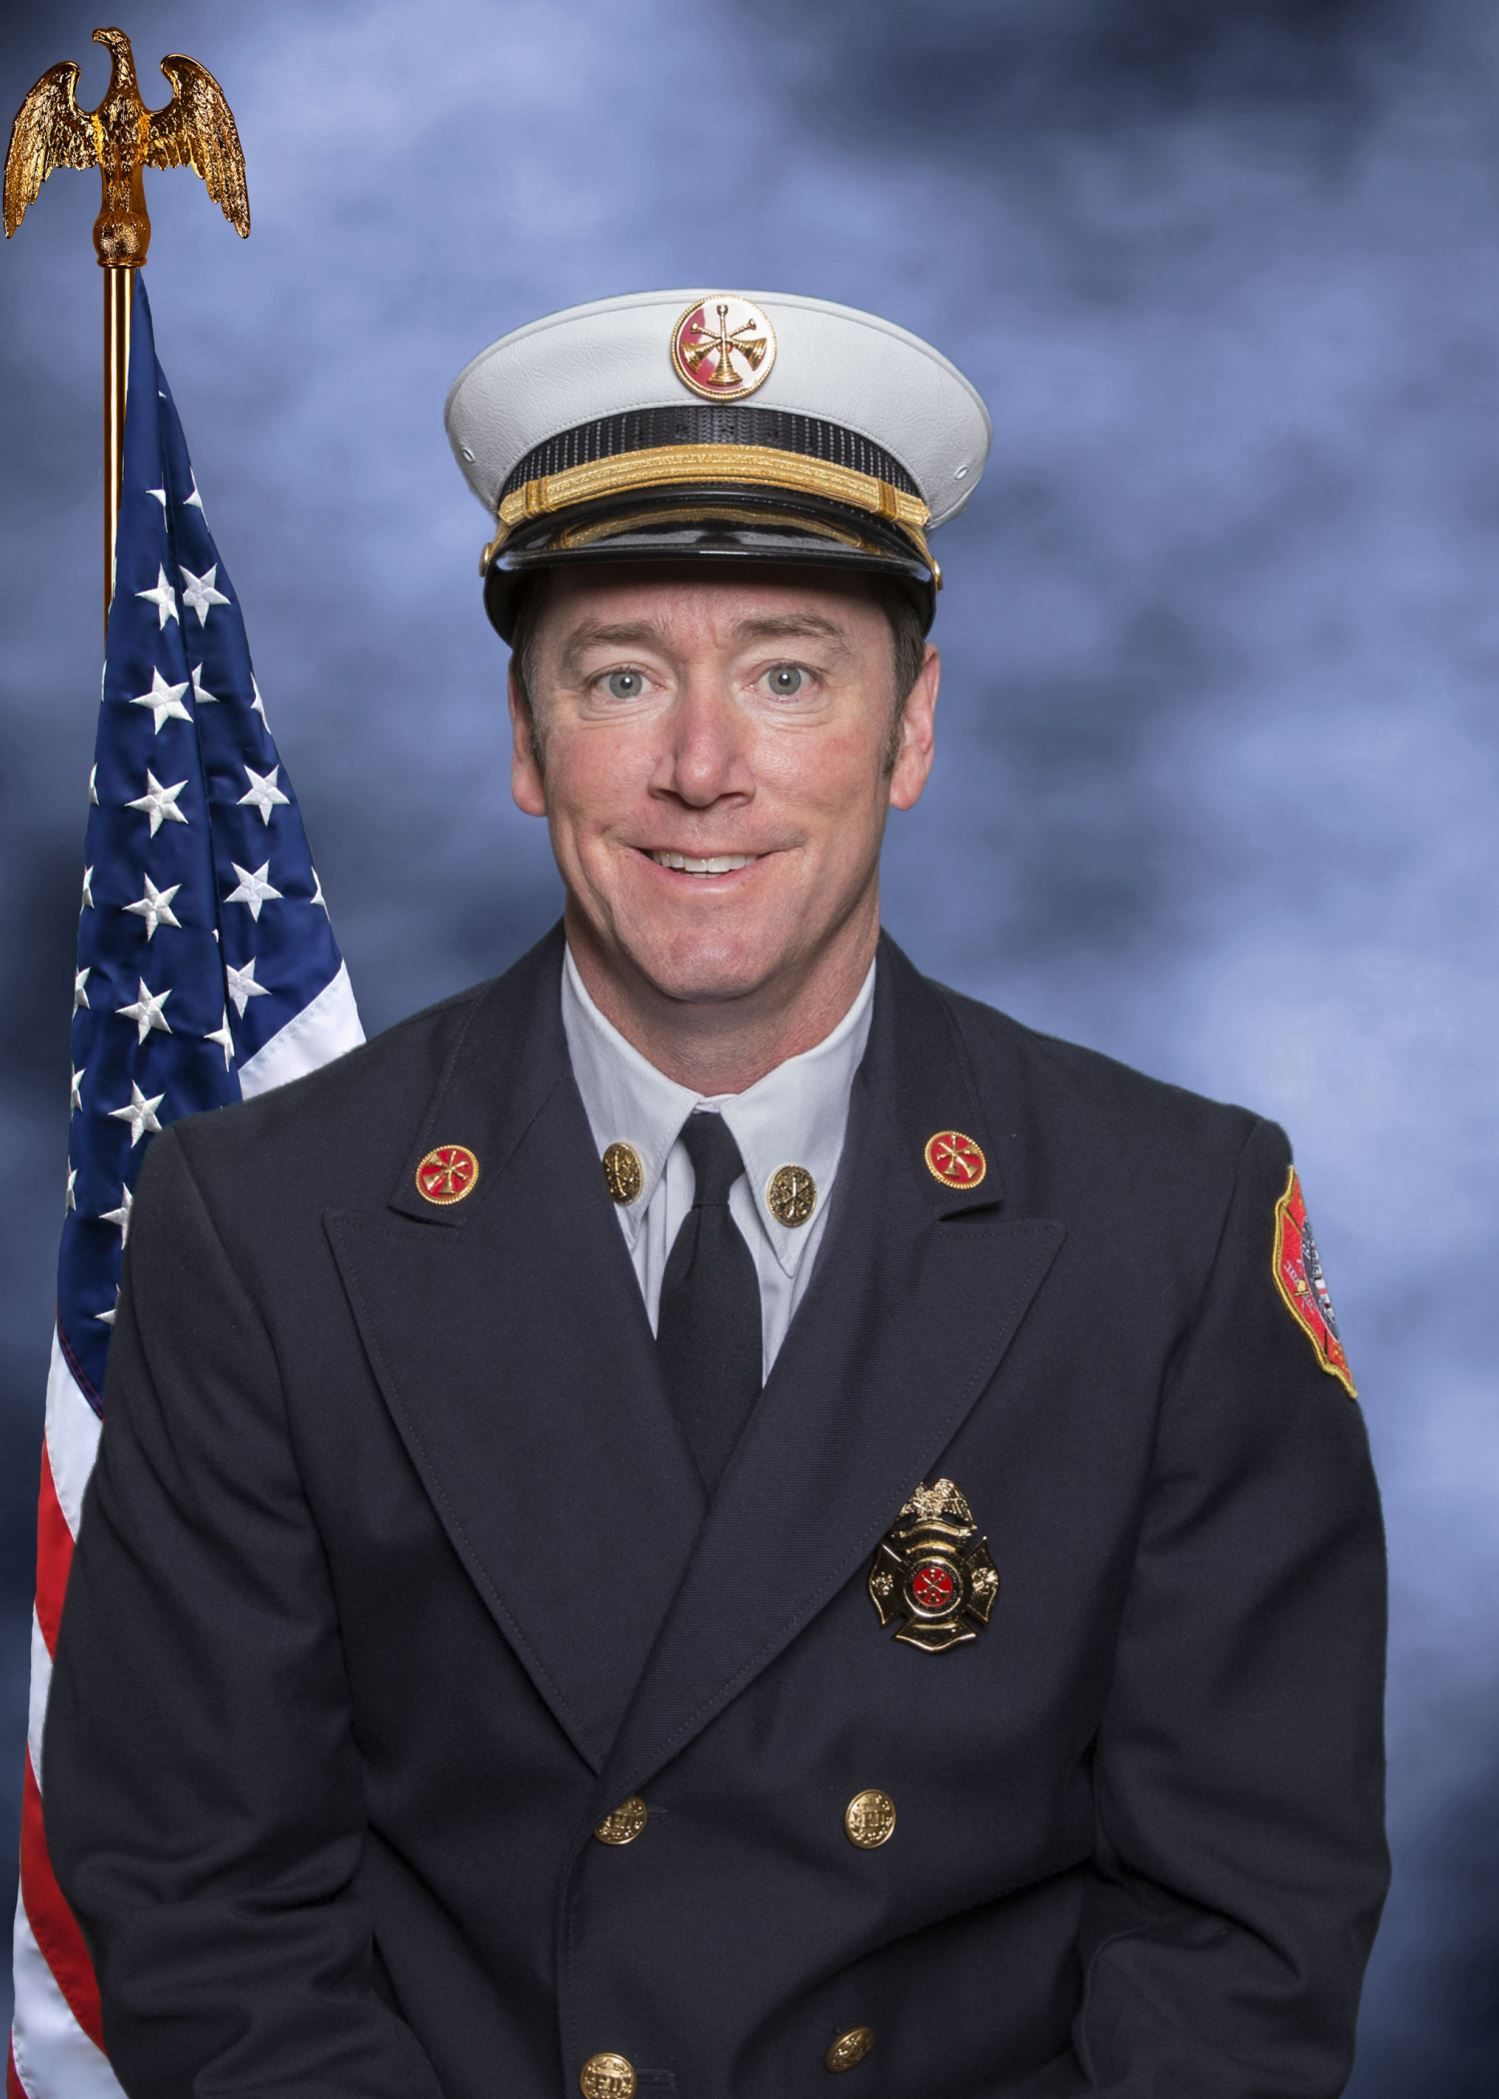 Dep. Chief Richard Doty